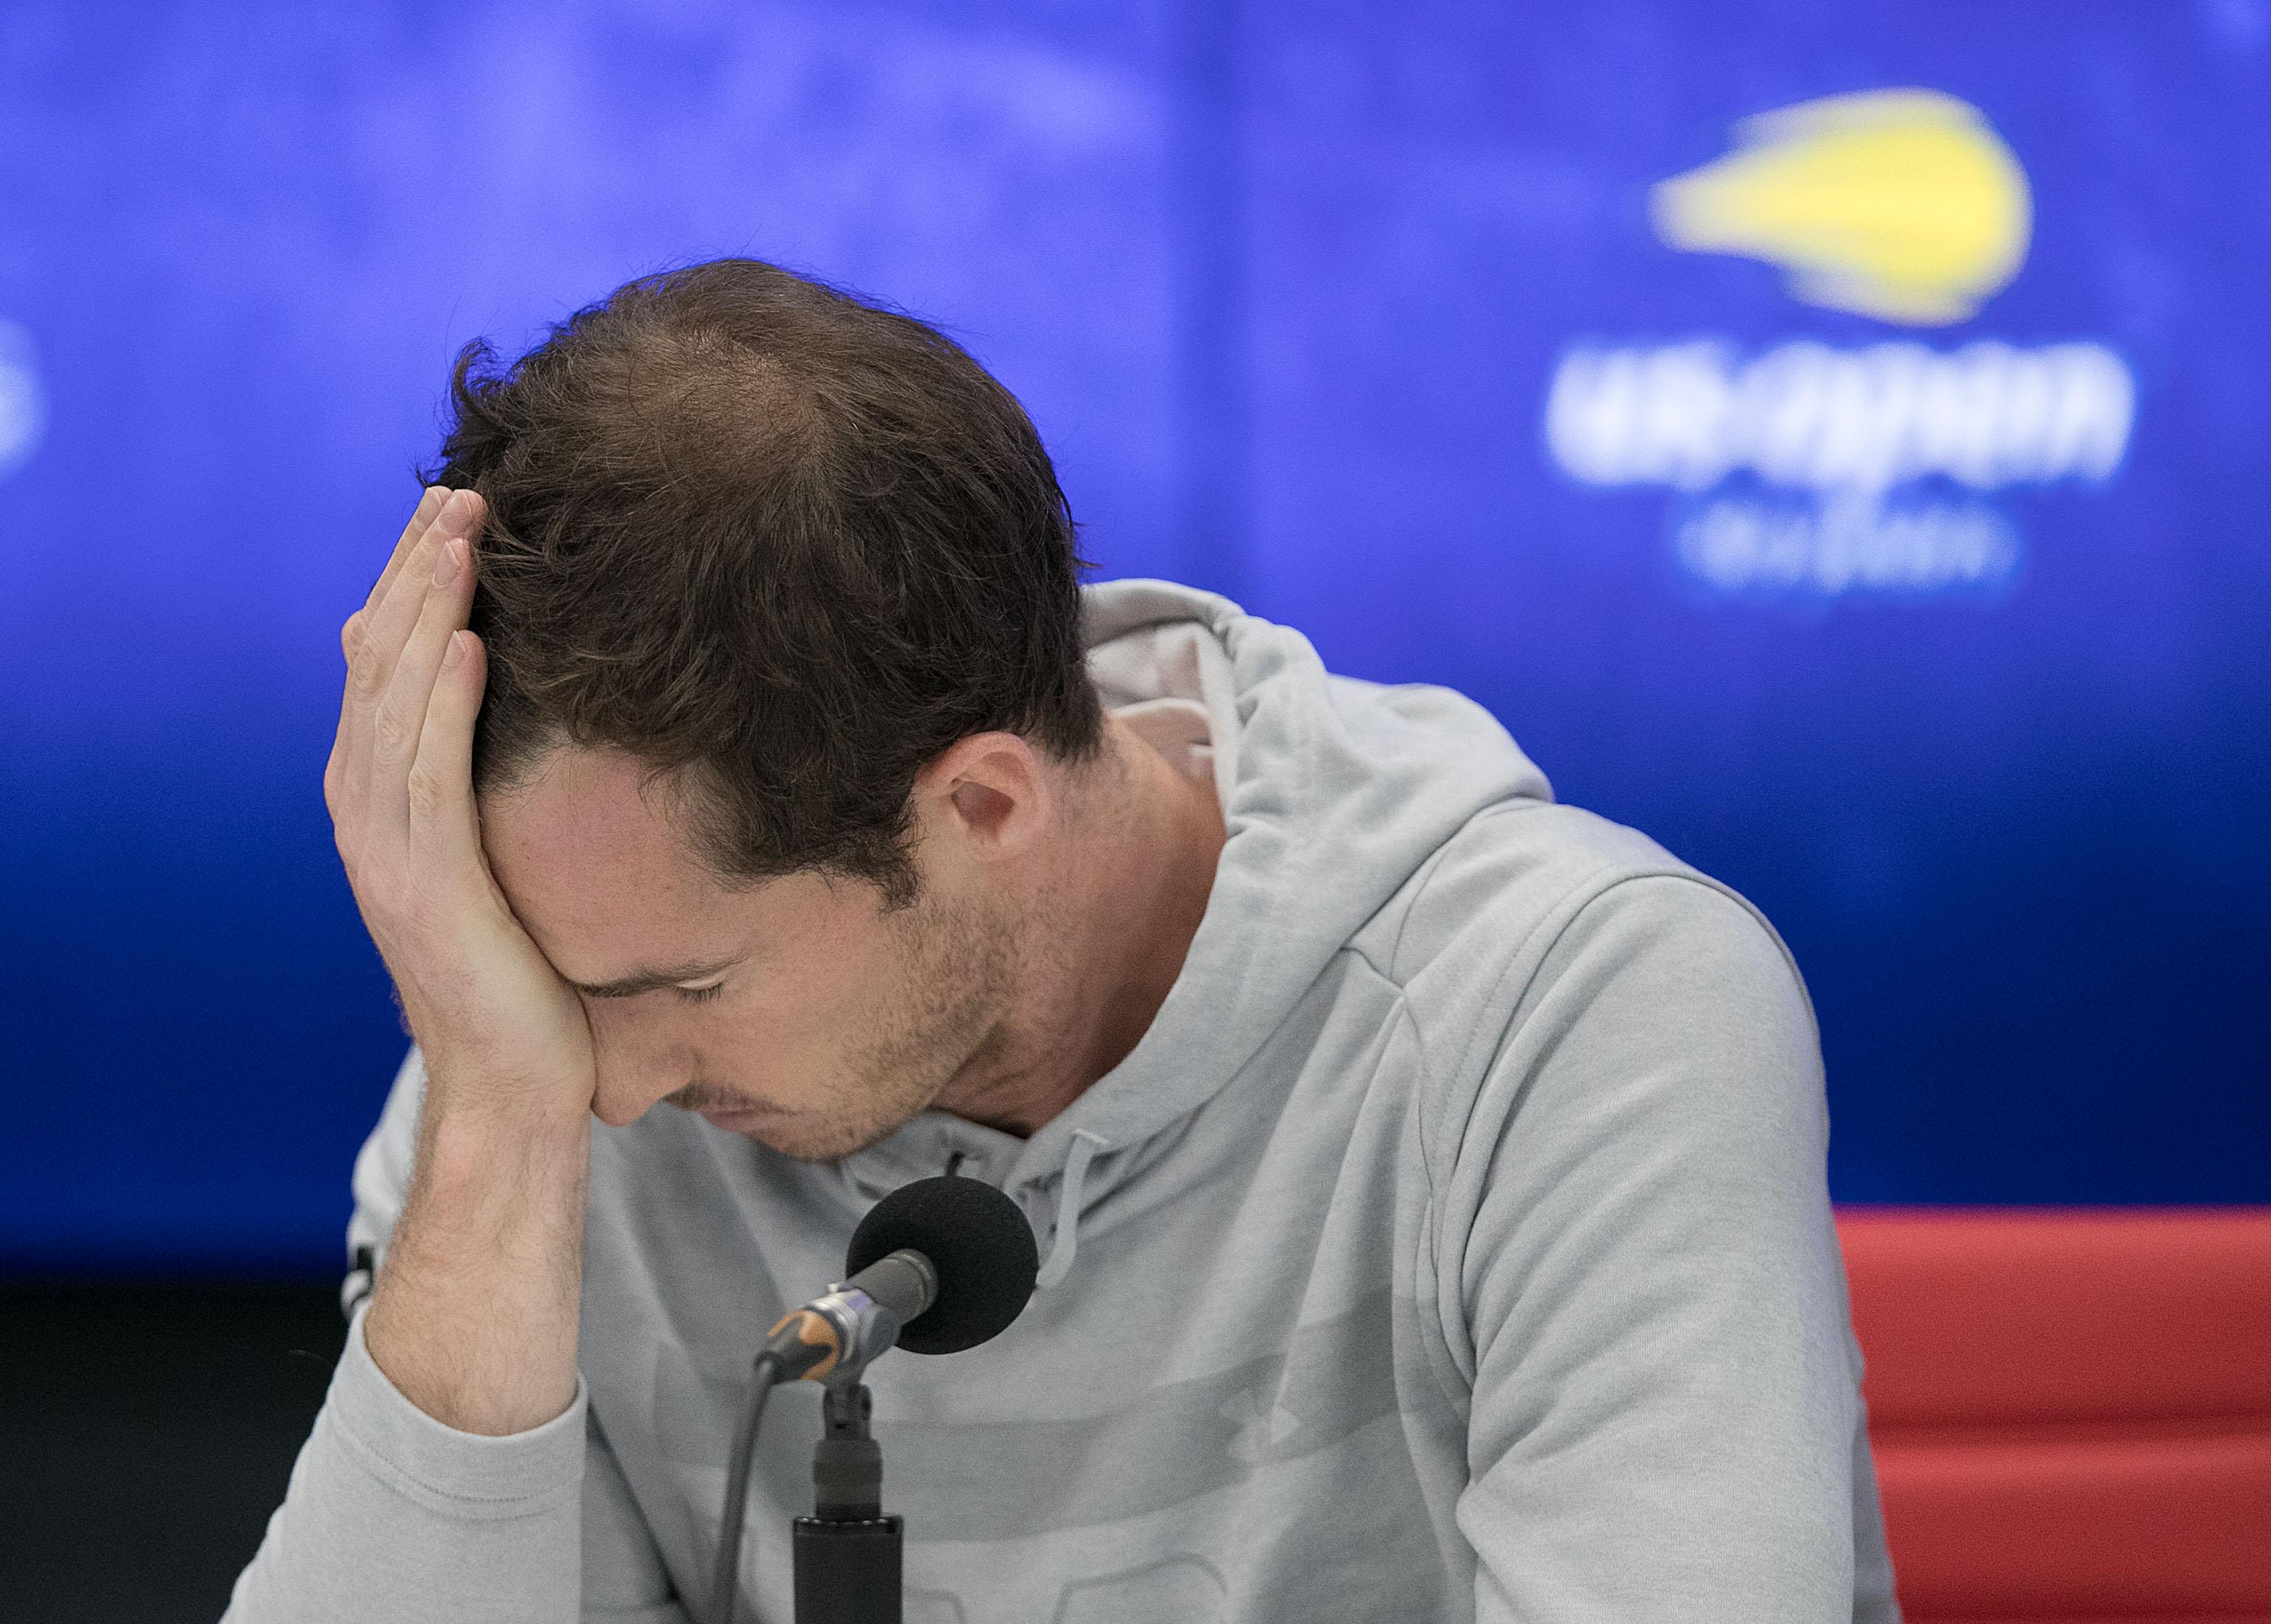 Andy Murray may not be able to play in Scotland again due to changes to the Davis Cup